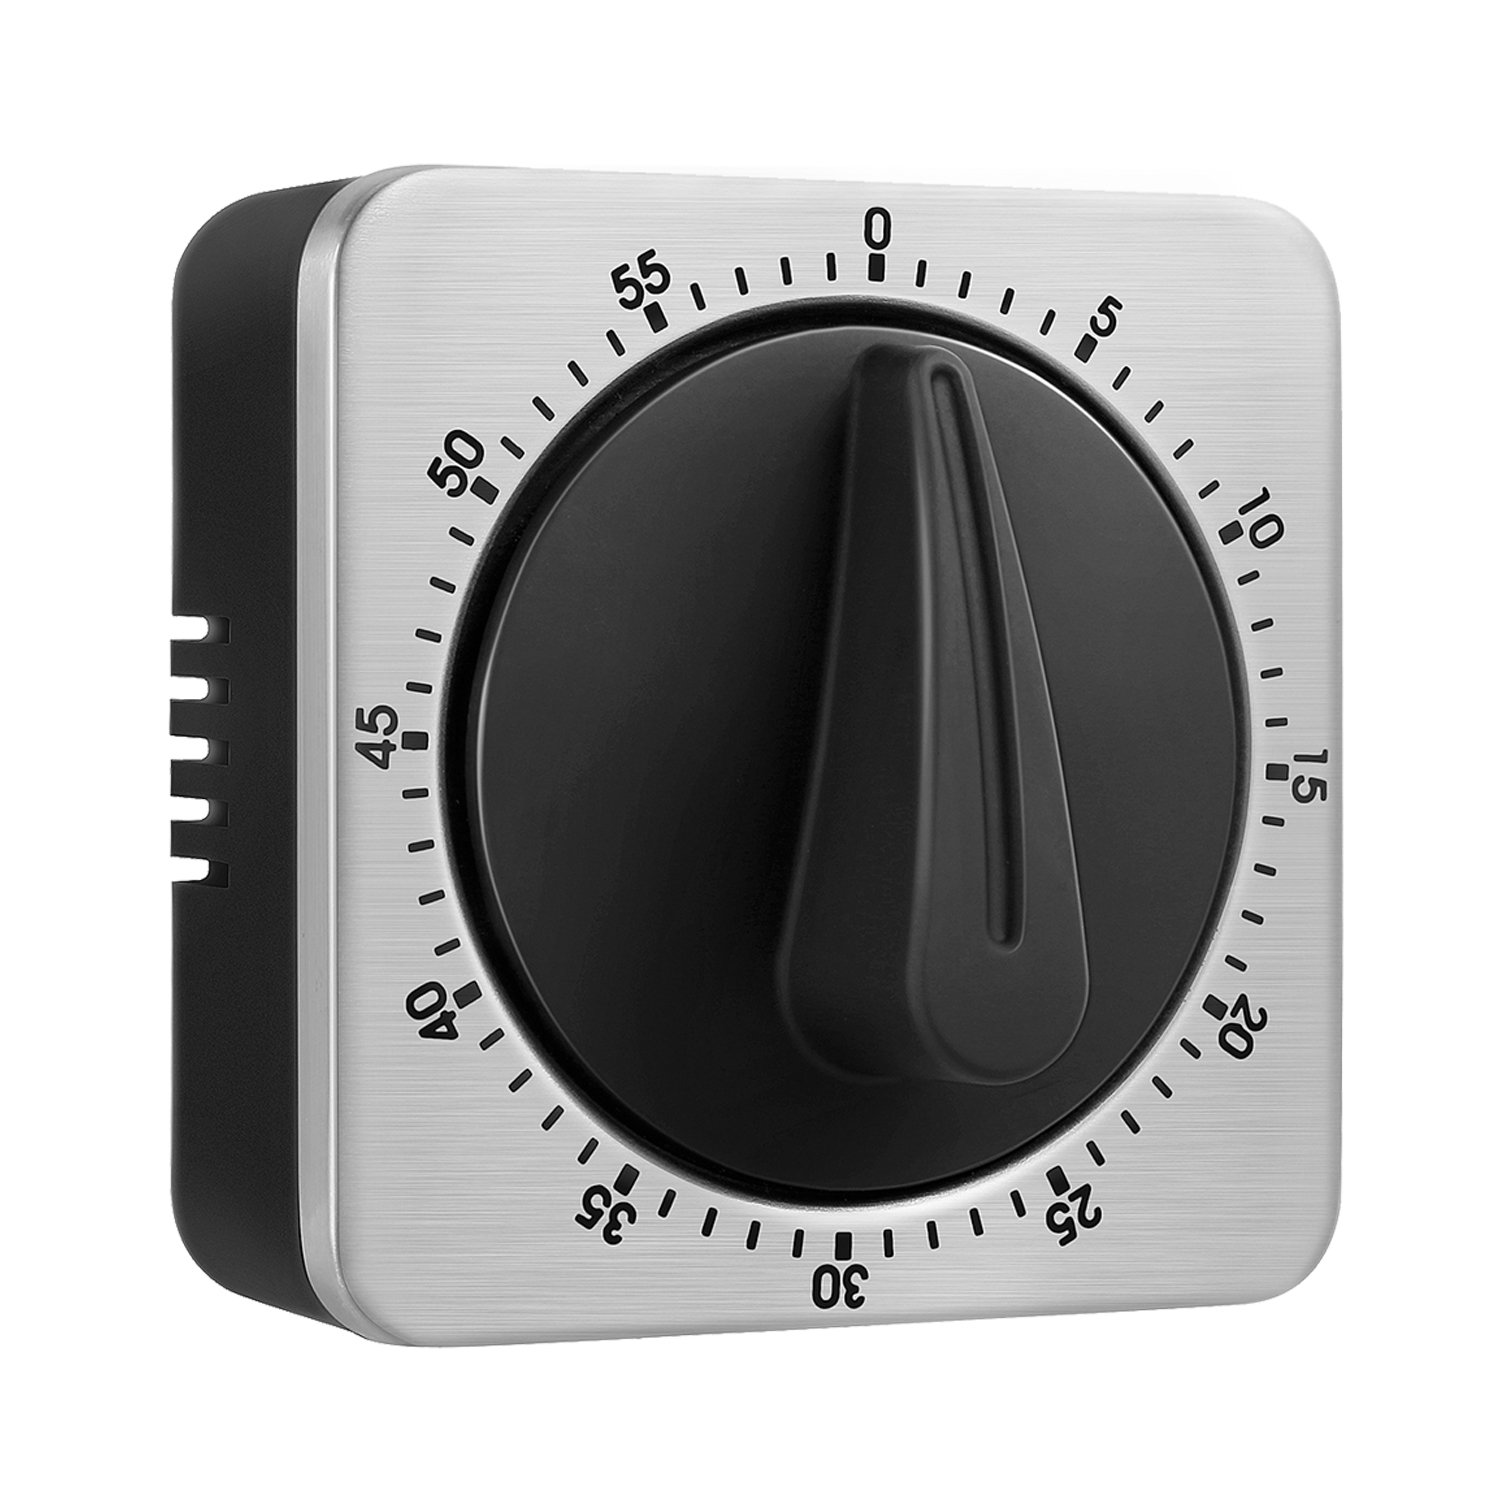 KeeQii Timer Kitchen Timer 60 Minute Timing with 80dB Alarm Sound Magnetic Countdown Timer Home Baking Cooking Steaming Manual Timer Stainless Steel Face Mechanical Timer (New Timer) by KeeQii